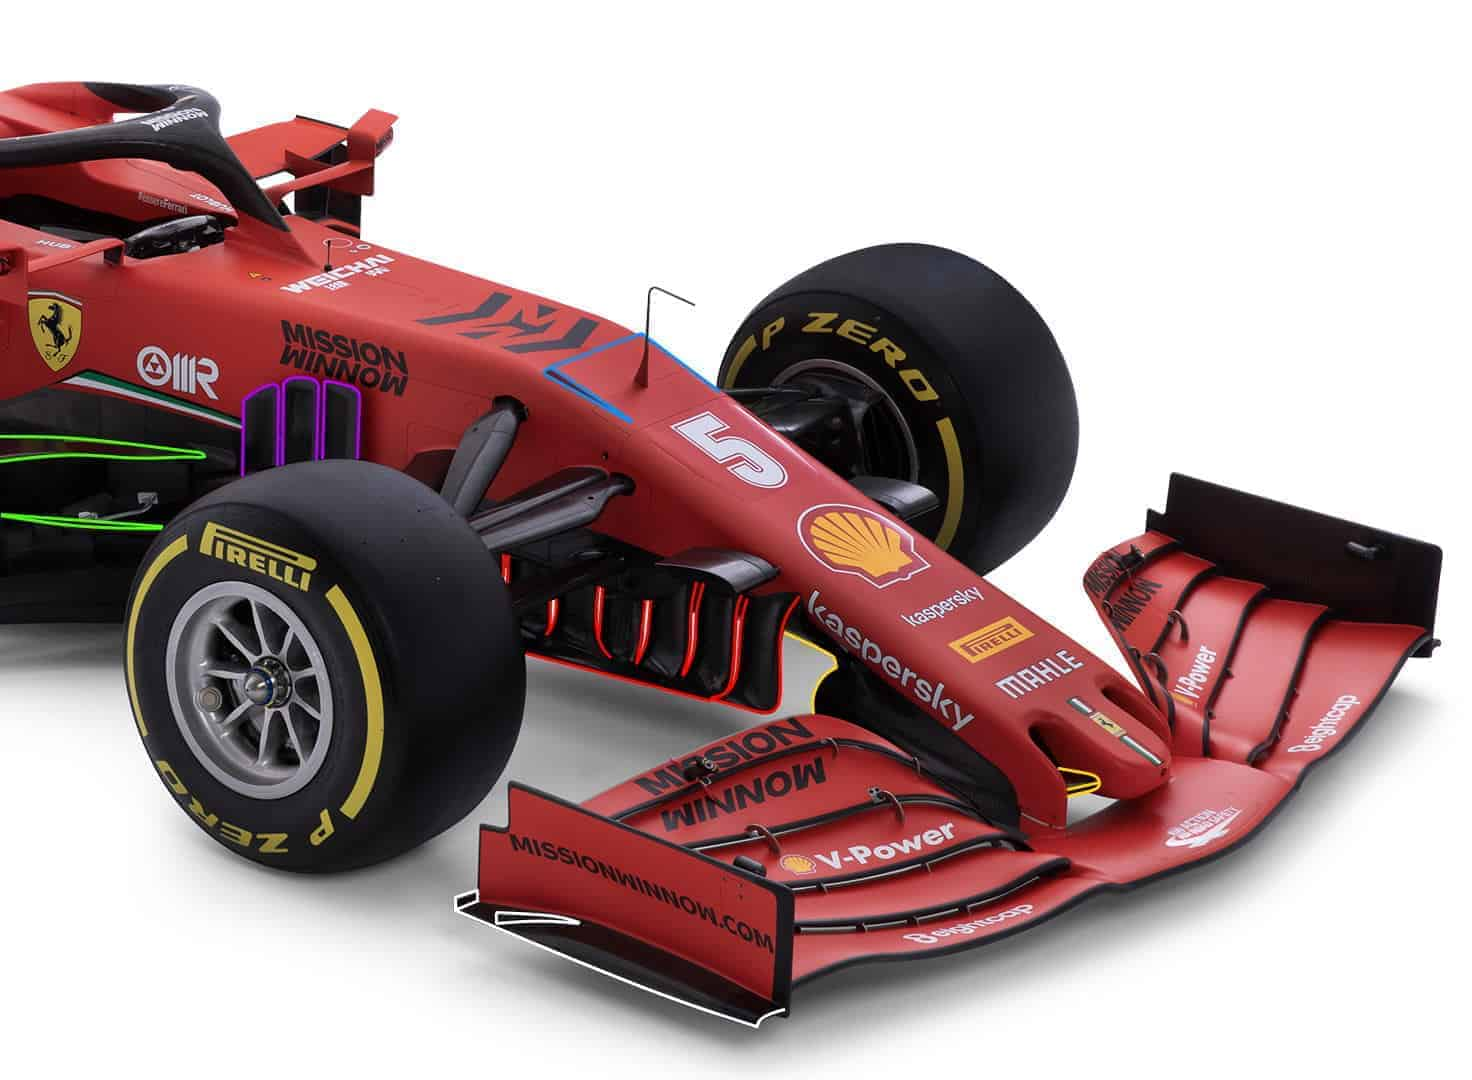 Ferrari F1 SF1000 2020 car studio photo front end Photo Ferrari Edited by MAXF1 net